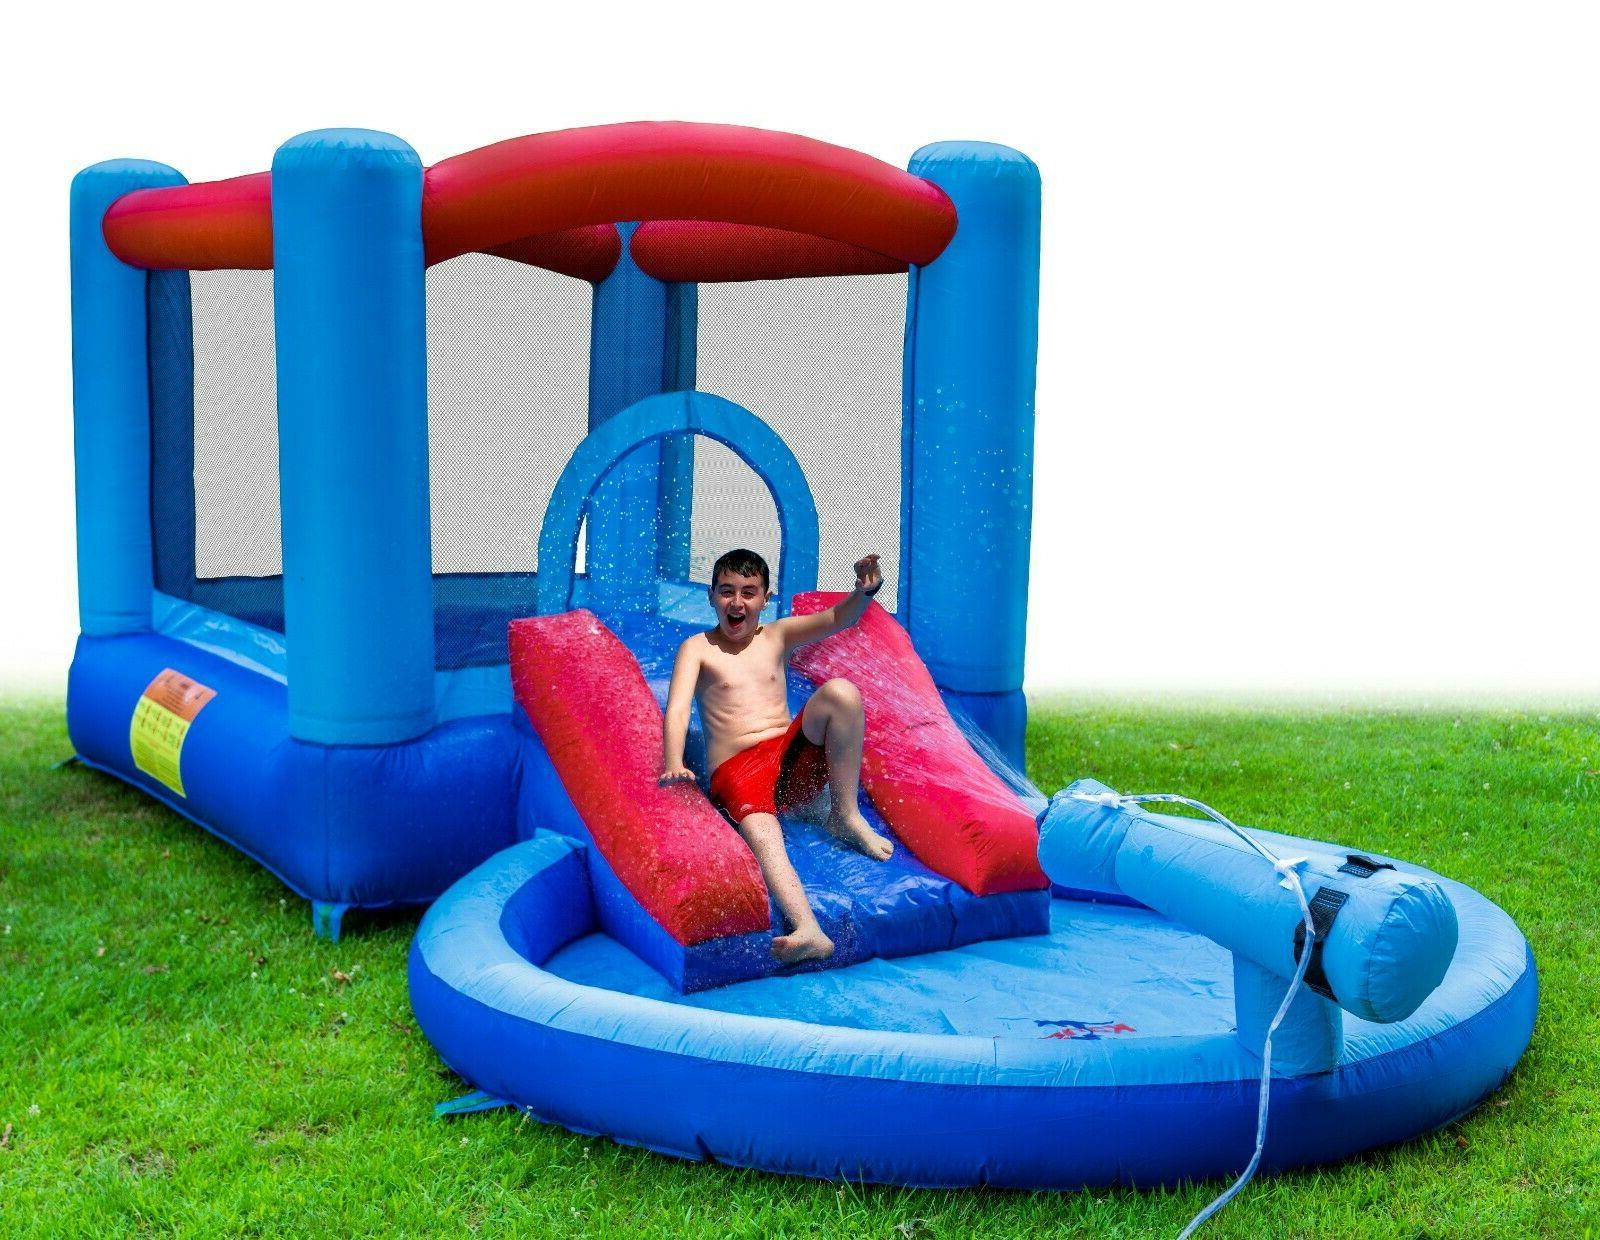 Inflatable Water Slide Bounce House and Splash Pool for Kids